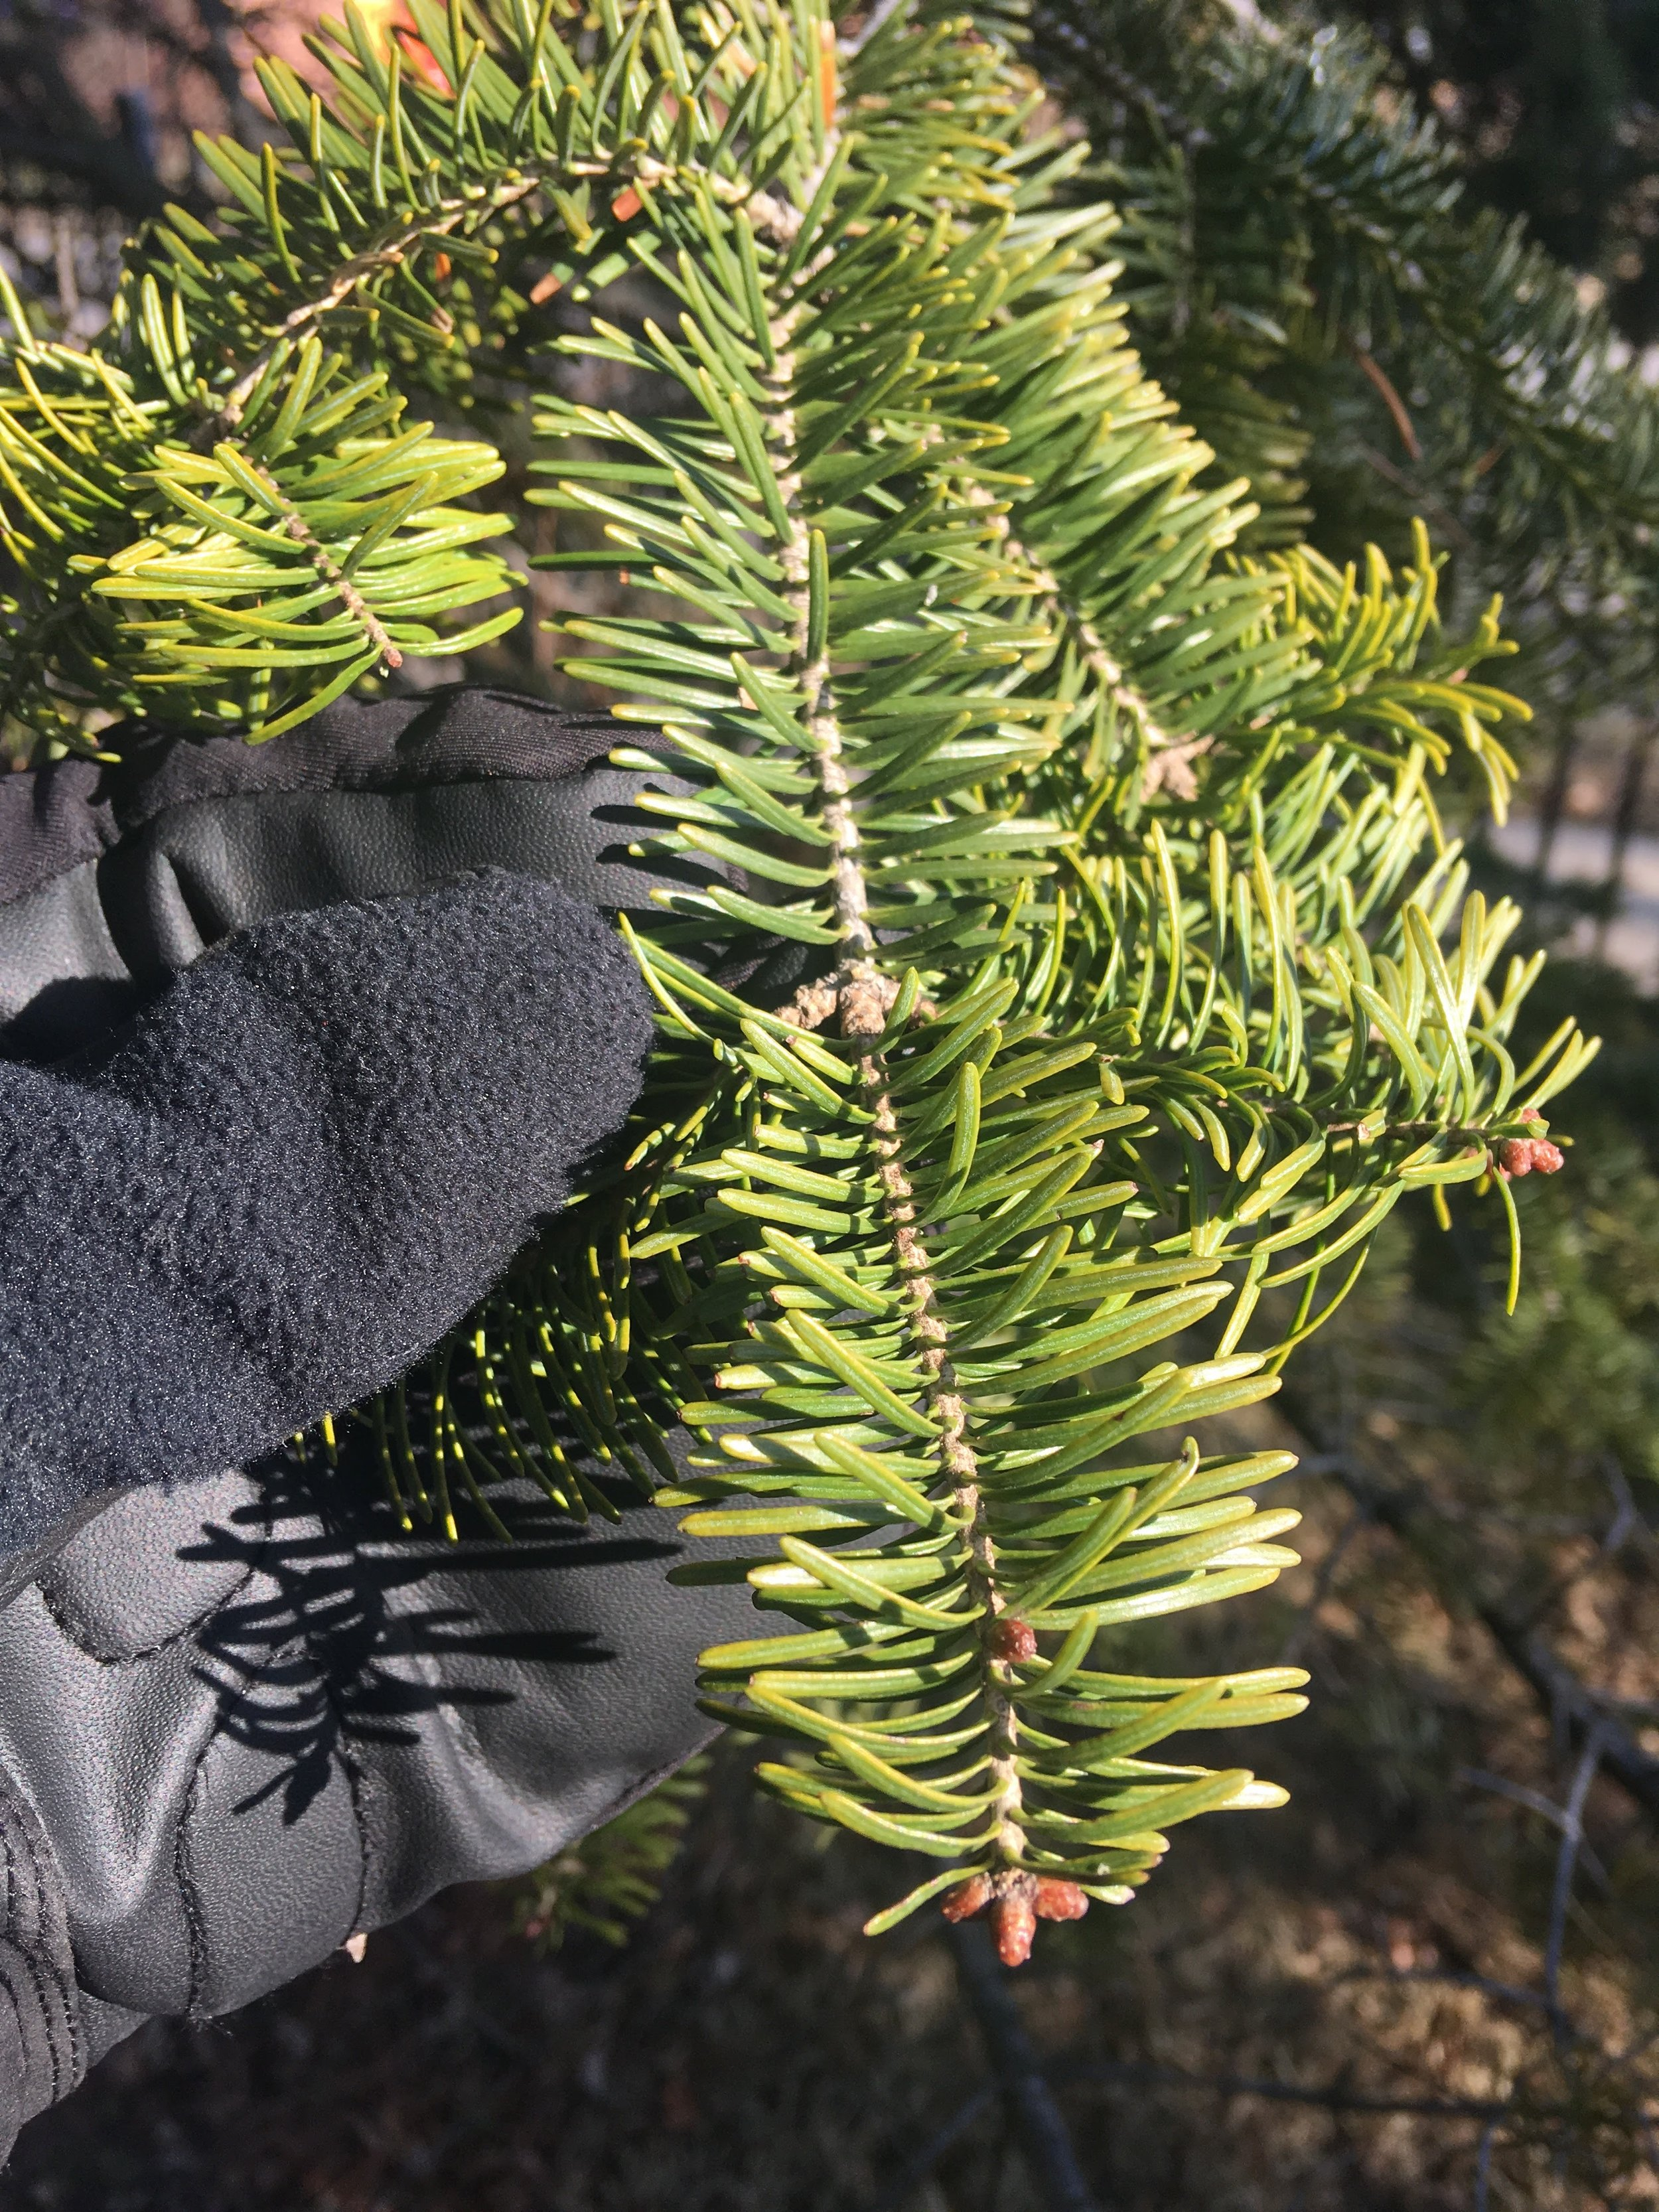 Fir needles are flat with blunt or notched tips.